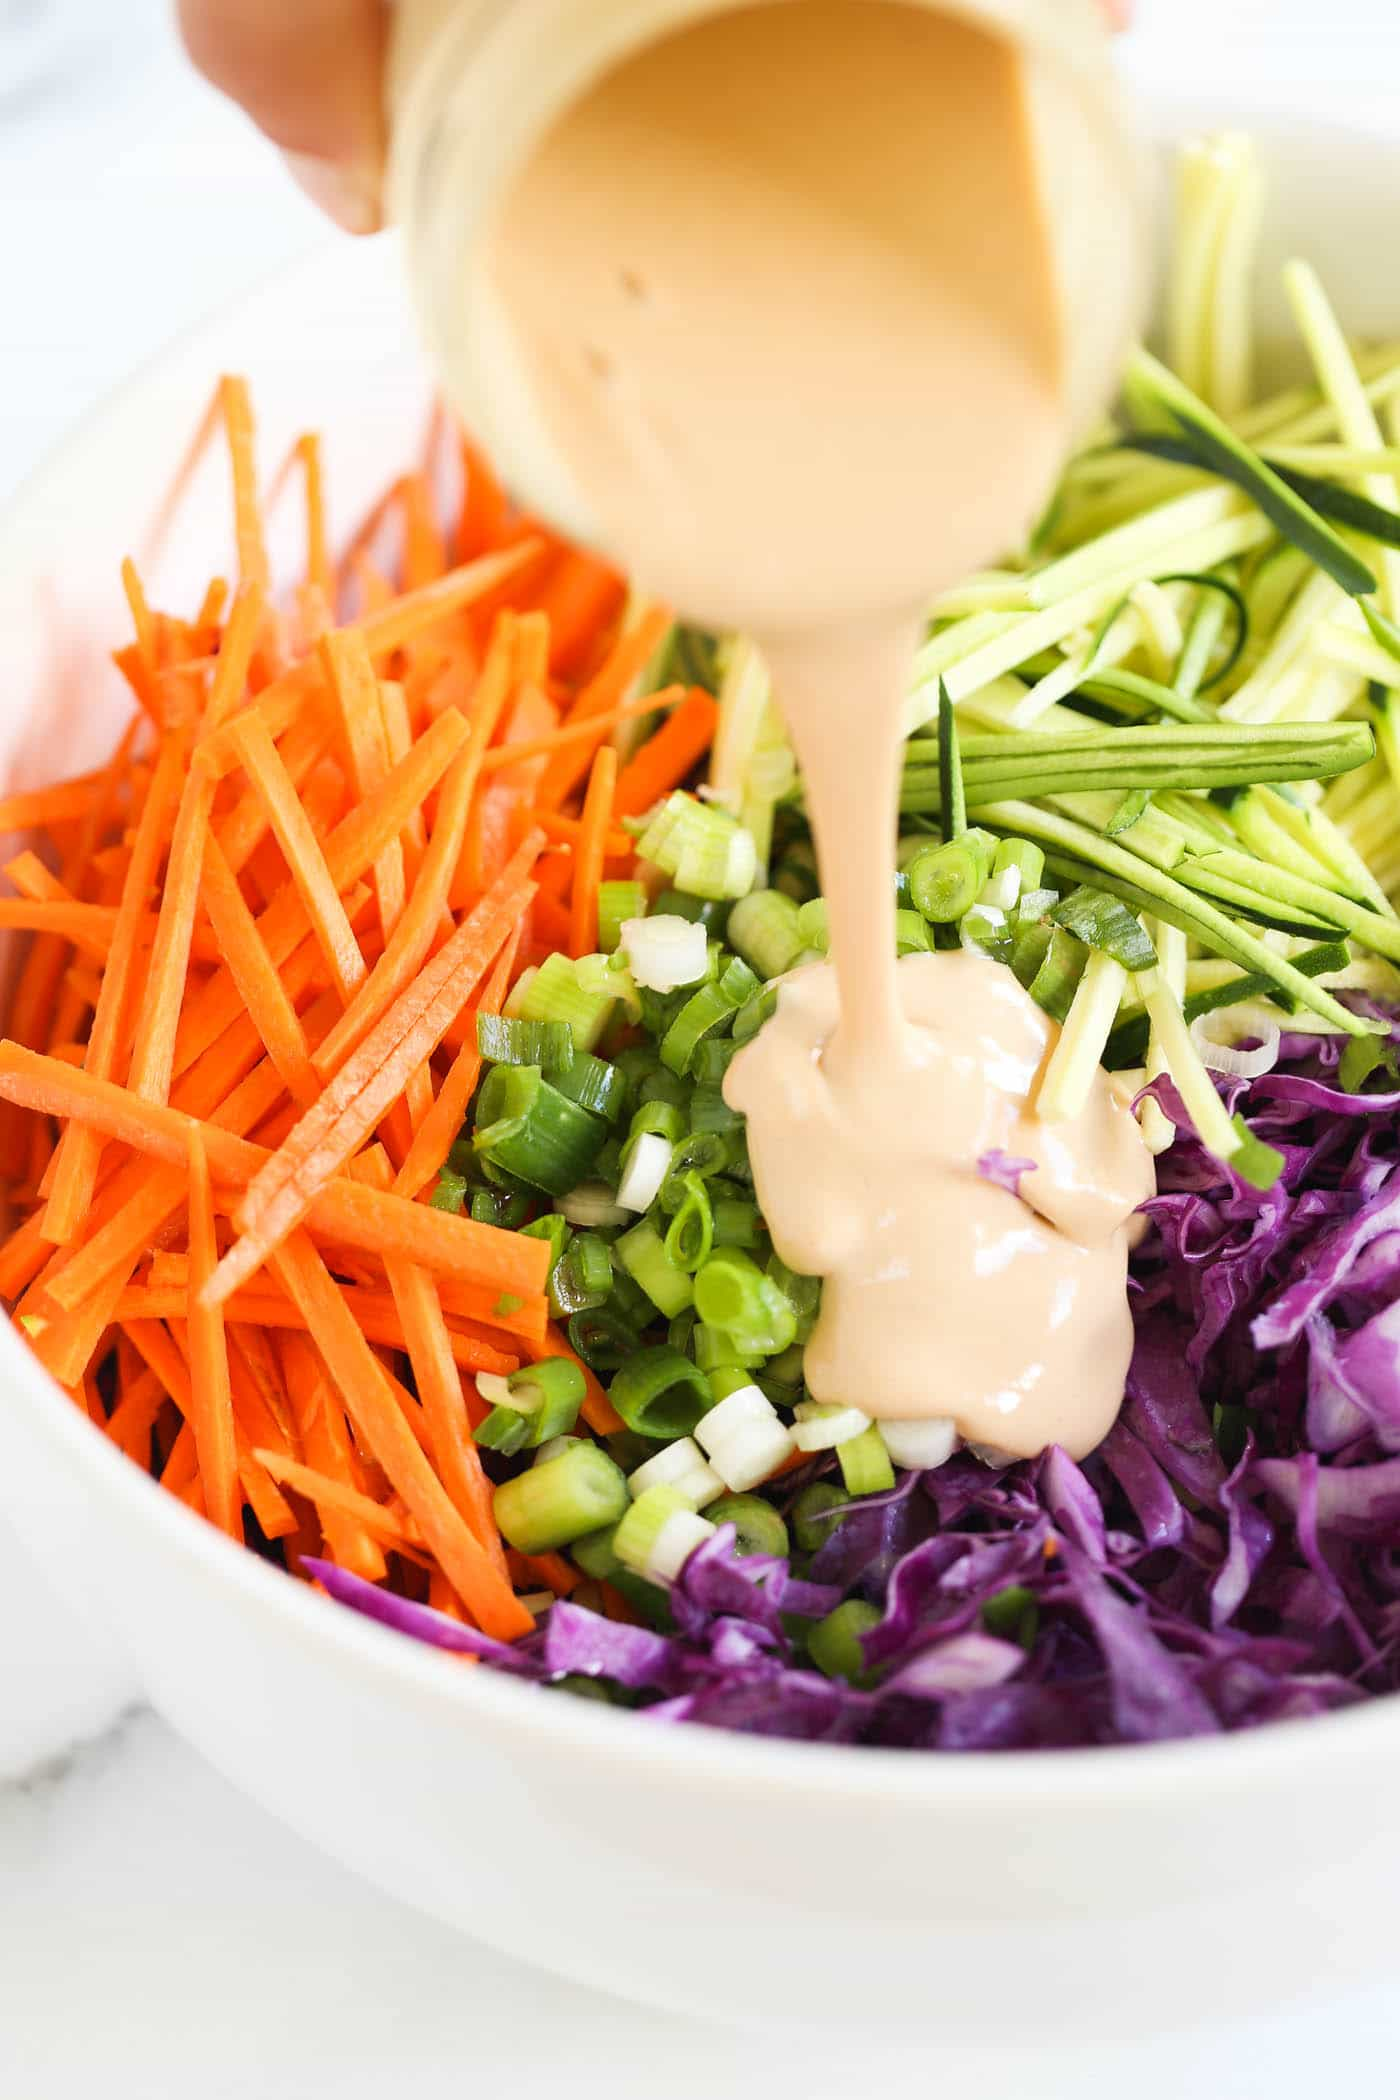 this MAYO-FREE coleslaw recipe uses tahini to make it ultra creamy and maple syrup to give it a bit of sweetness!